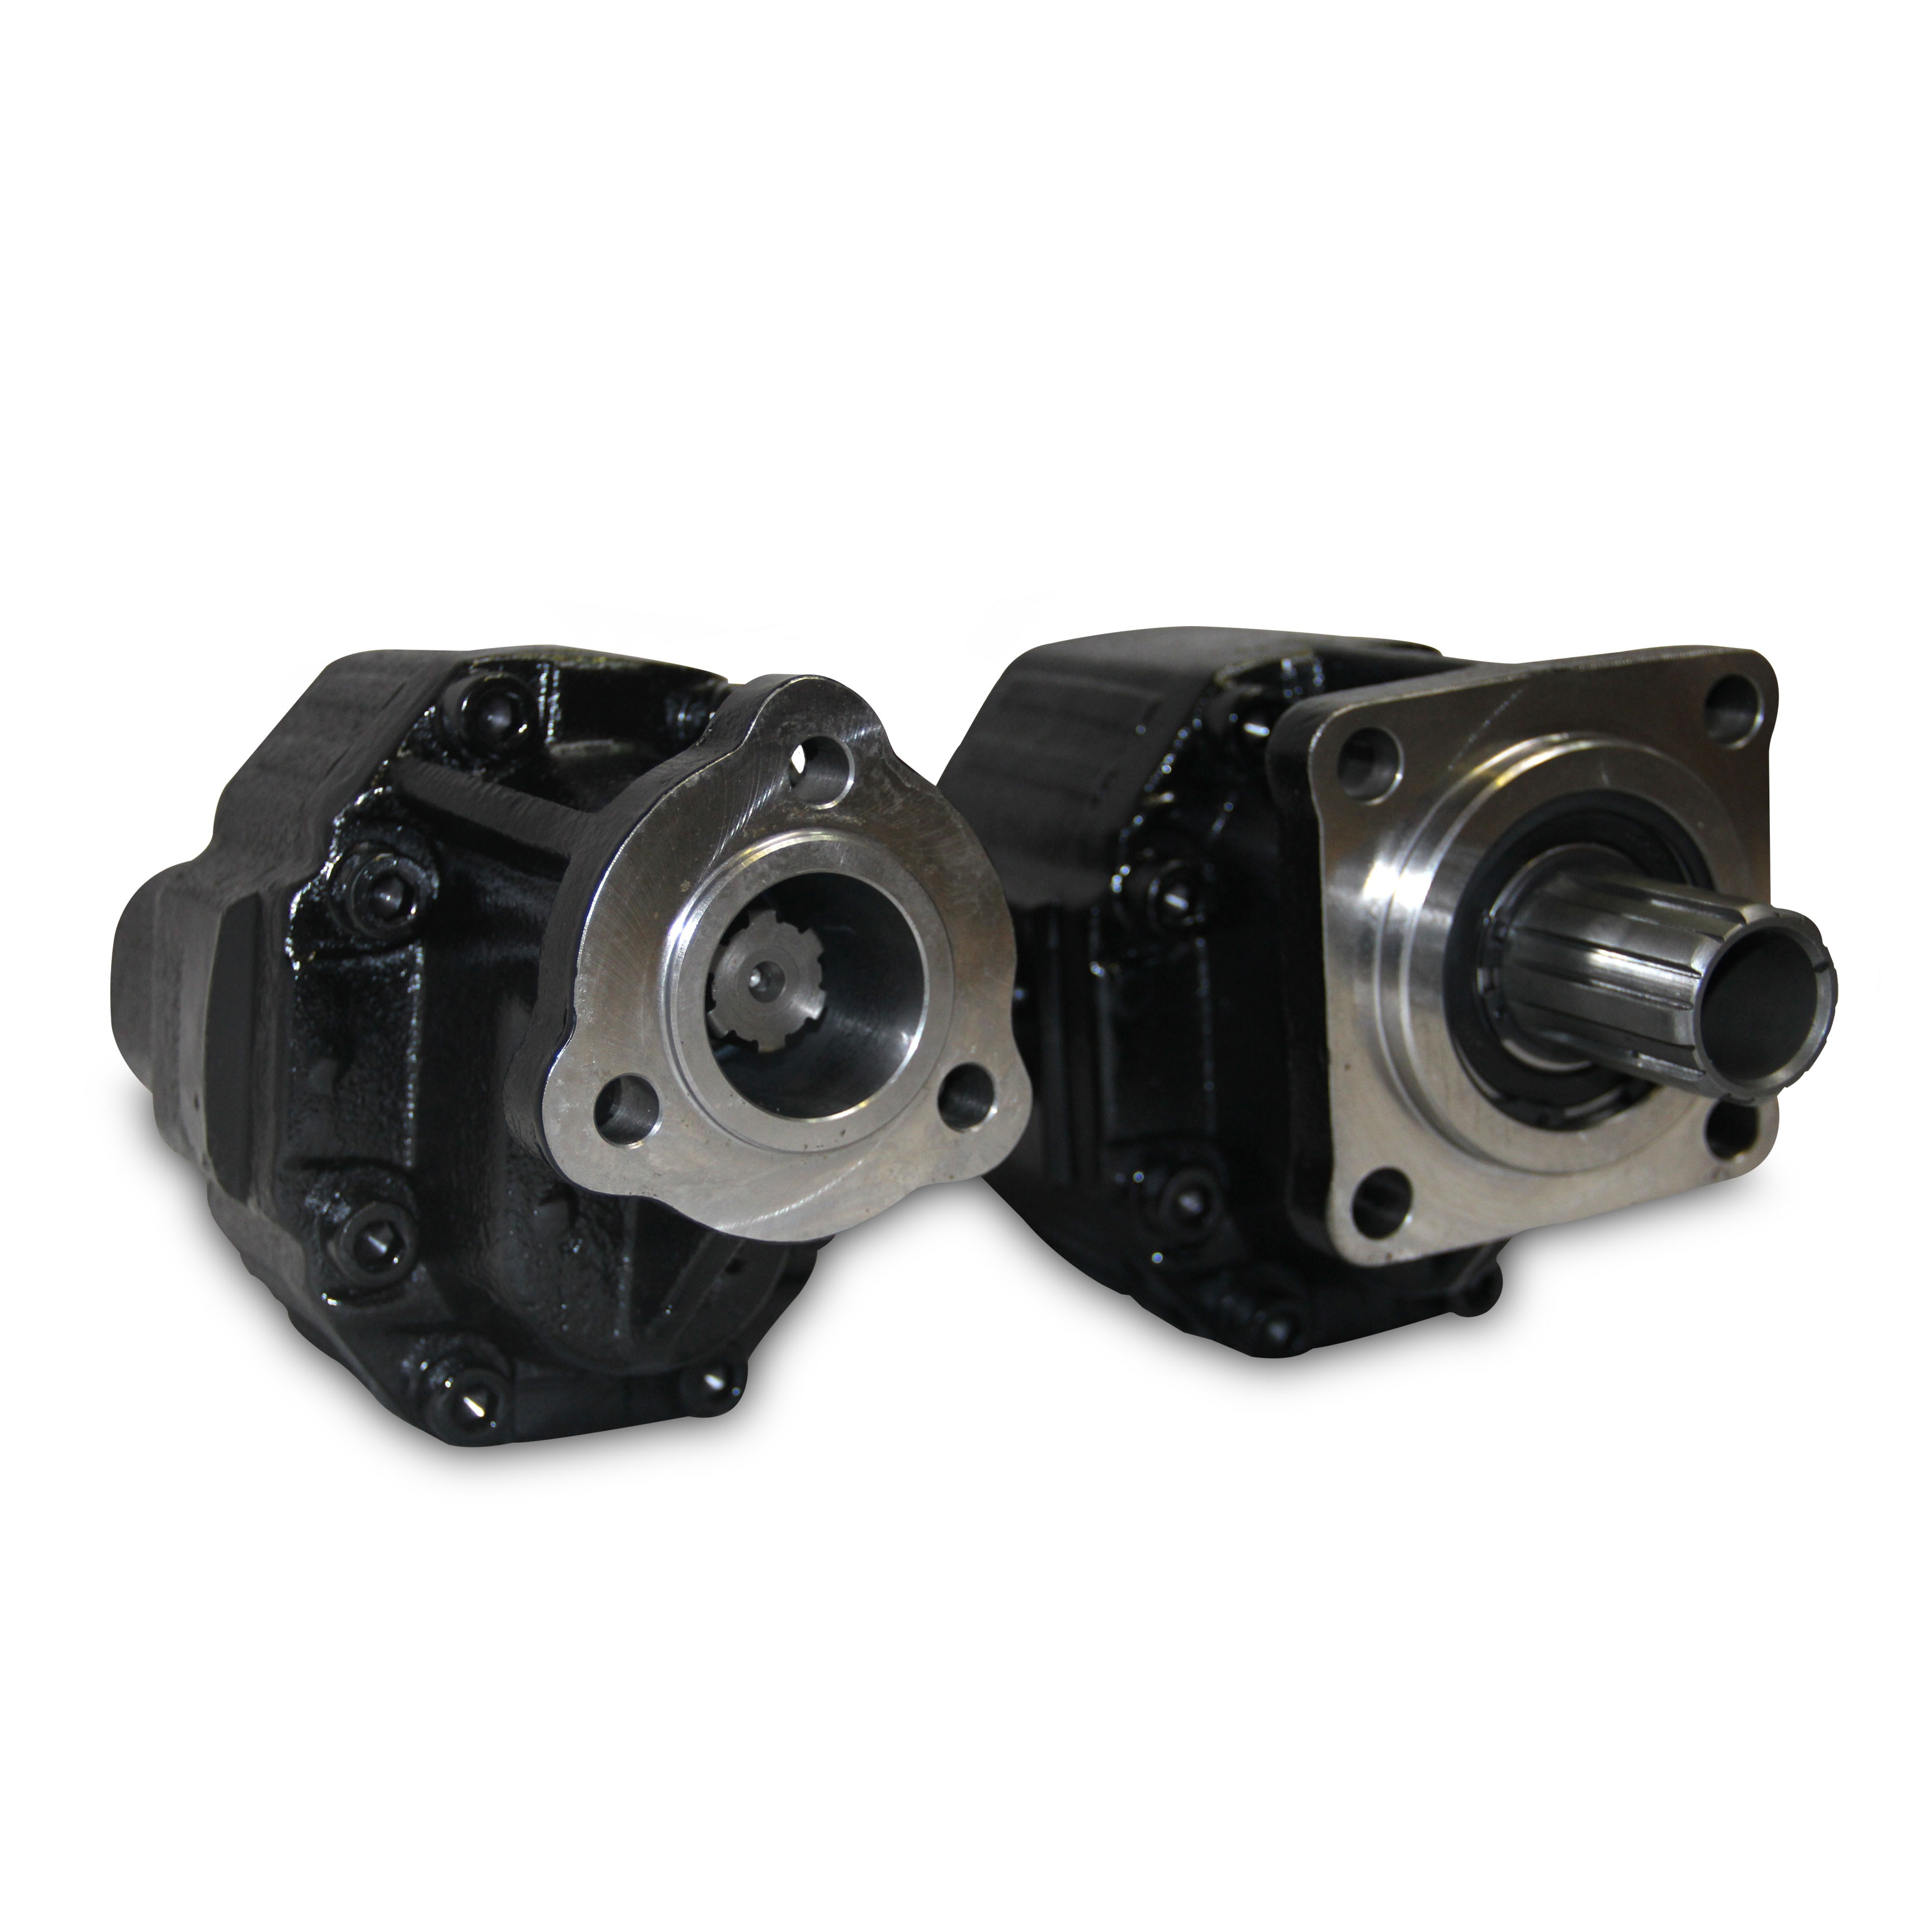 Bidirectional Hydraulic Gear Pump B3 series by ABER